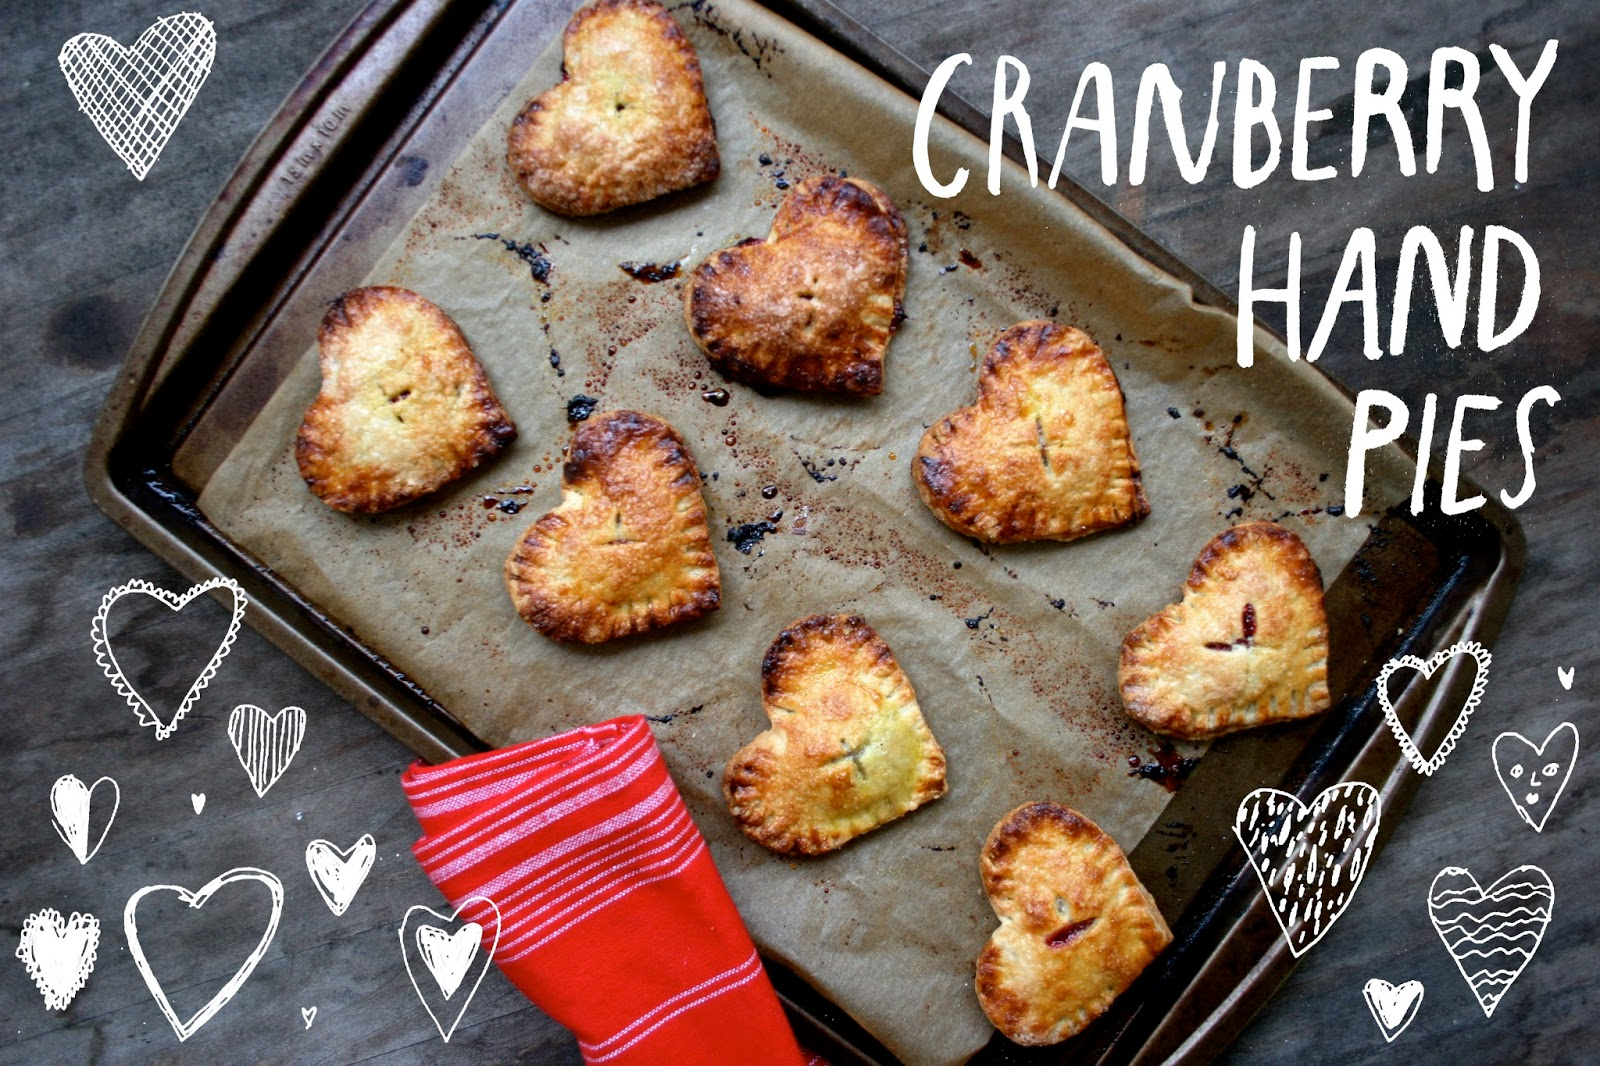 Heart-Shaped Cranberry Hand Pies with Elizabeth Graeber illustration